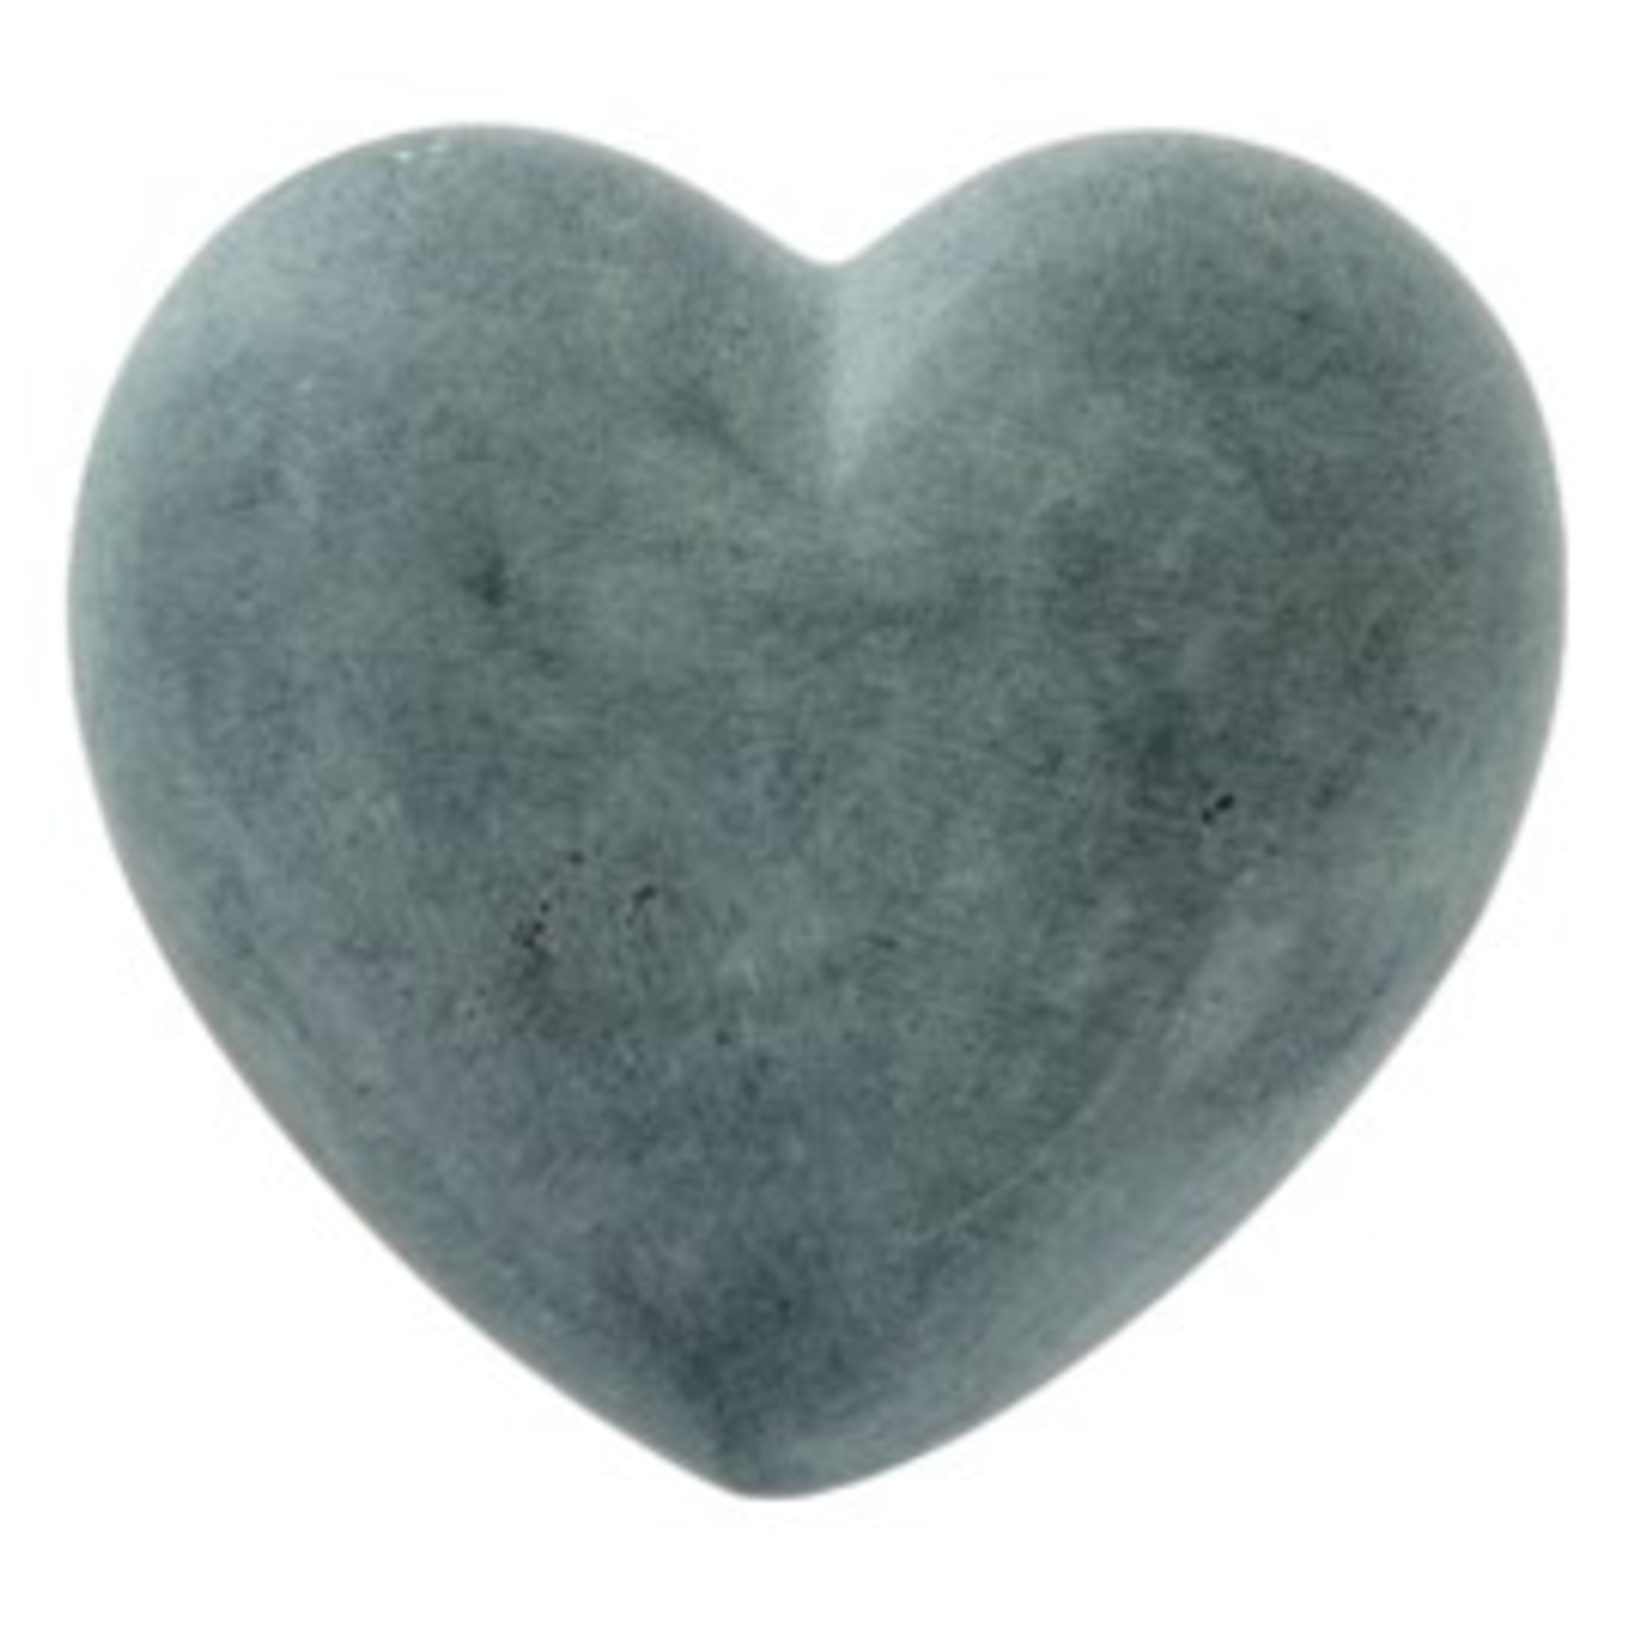 XL soapstone Heart Grey